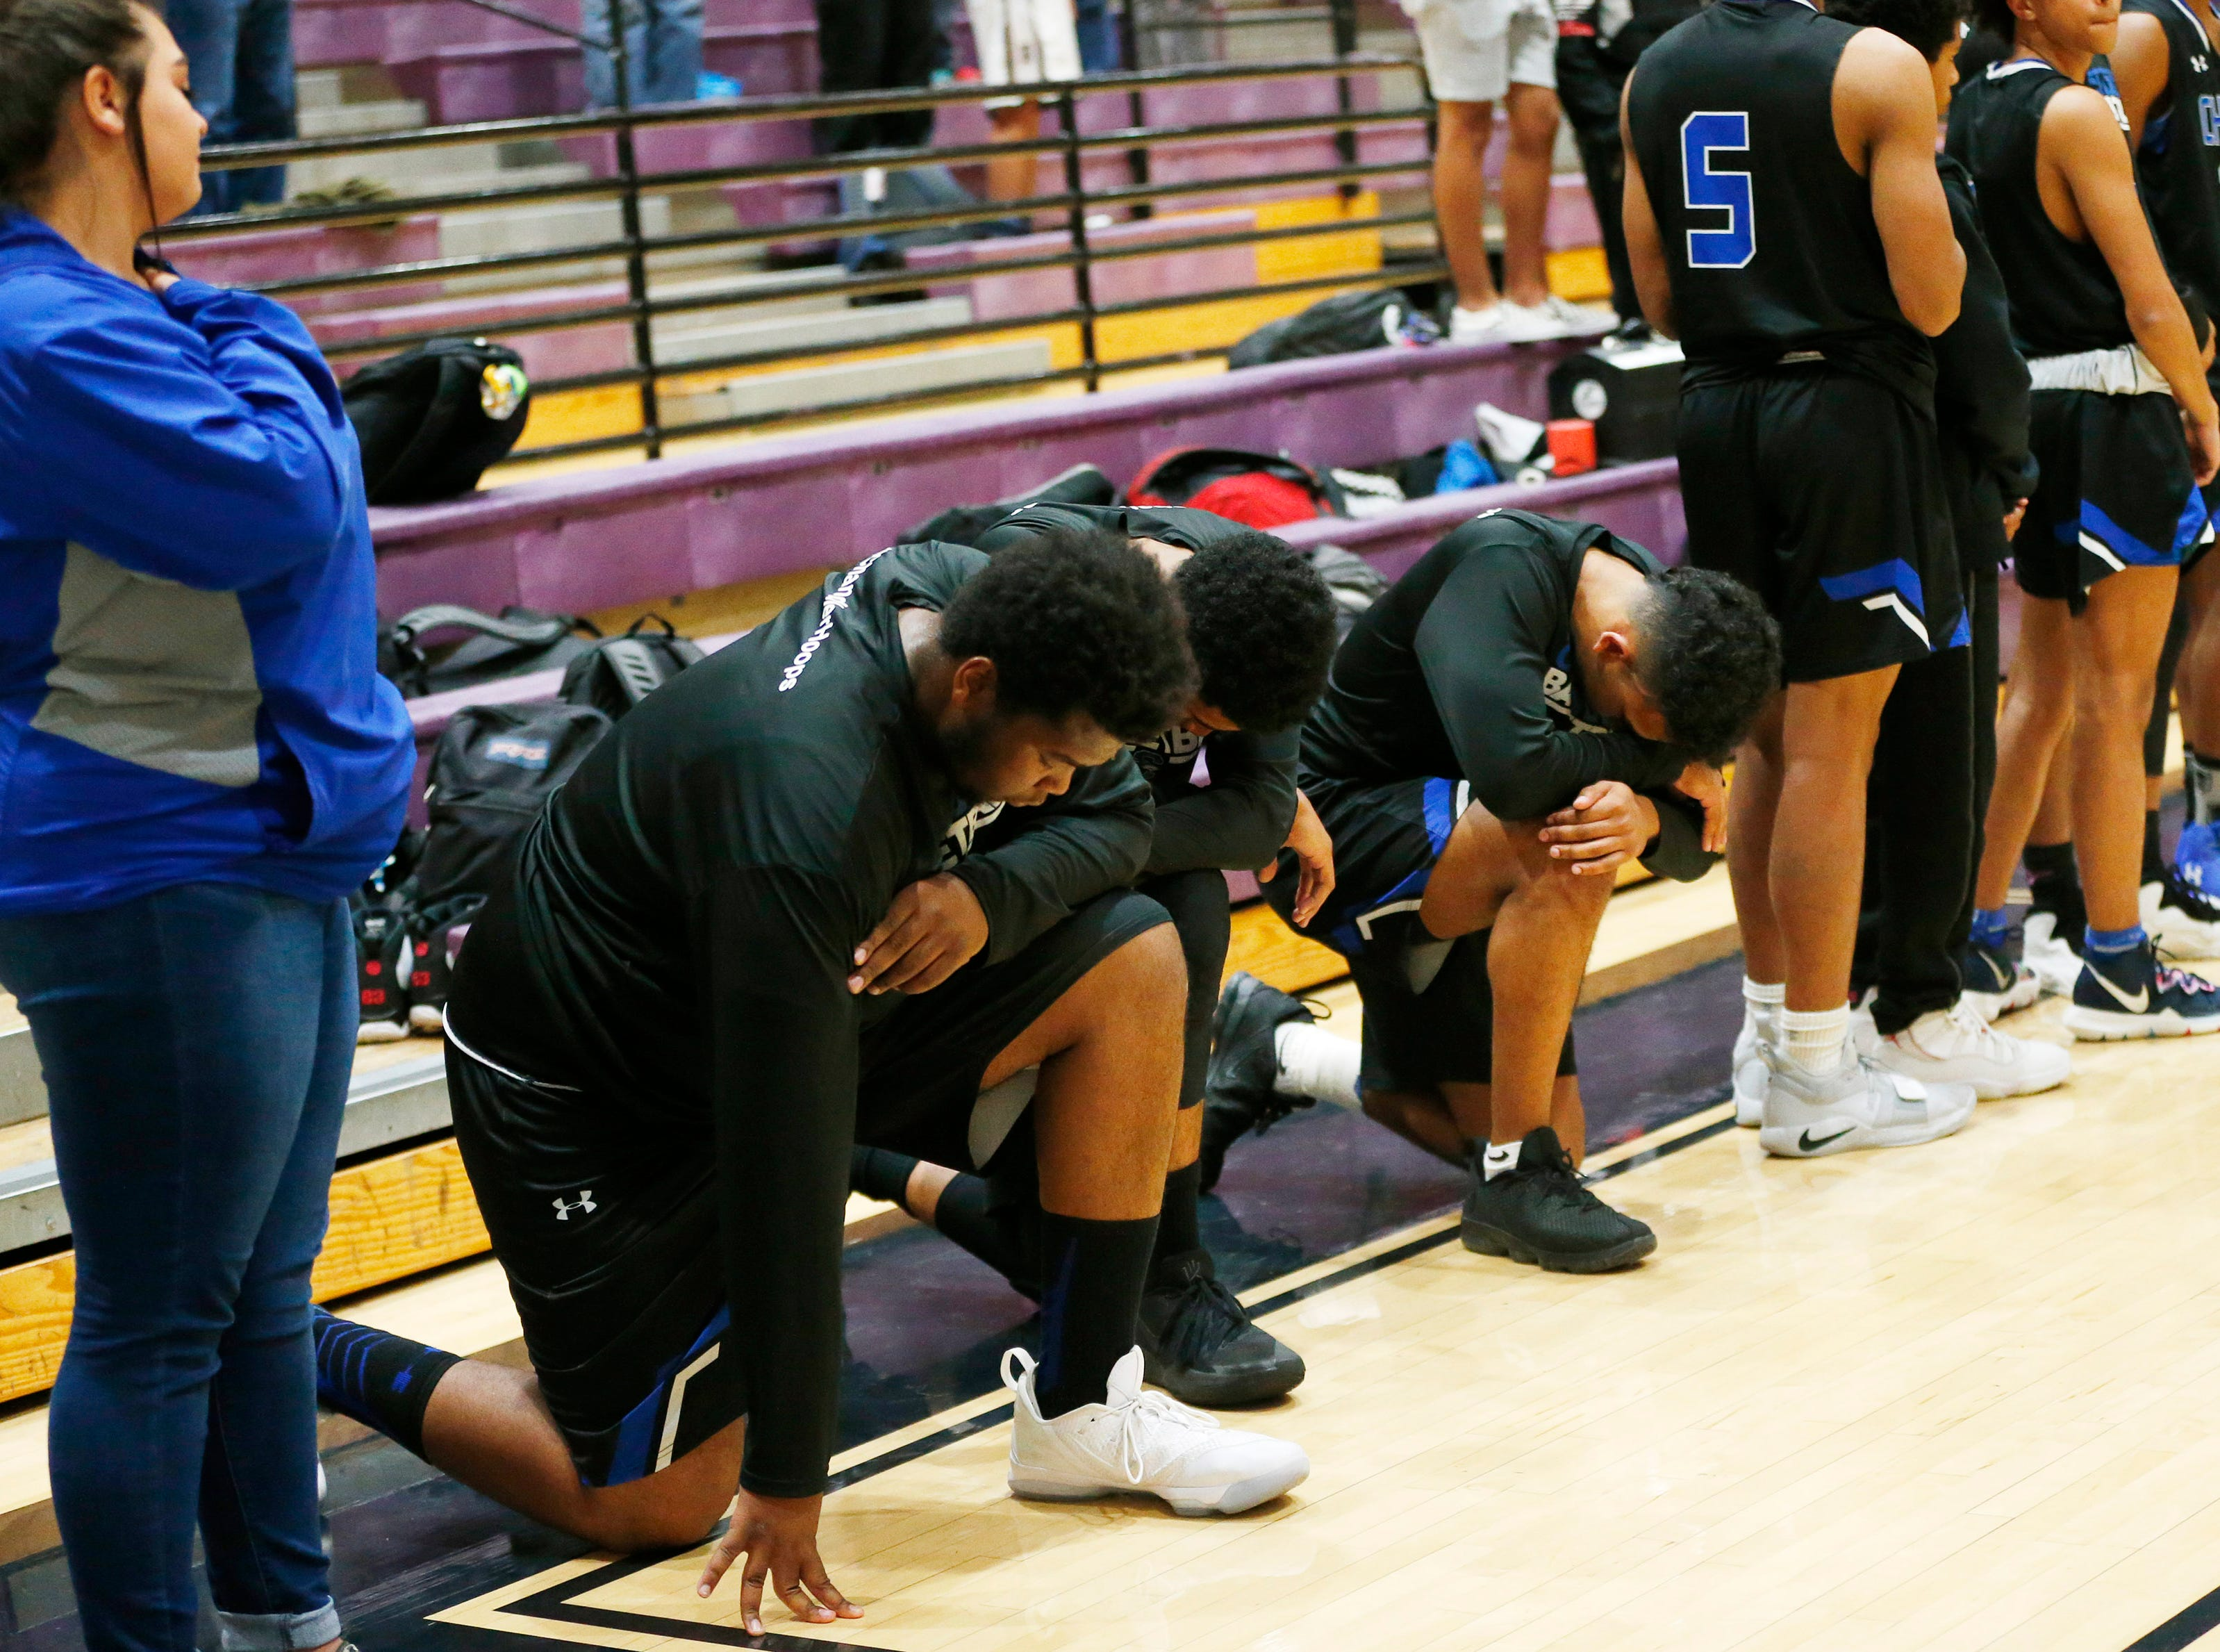 Chandler High basketball player take a knee during the National Anthem before playing against Hamilton in Chandler, Ariz. January 22, 2019.